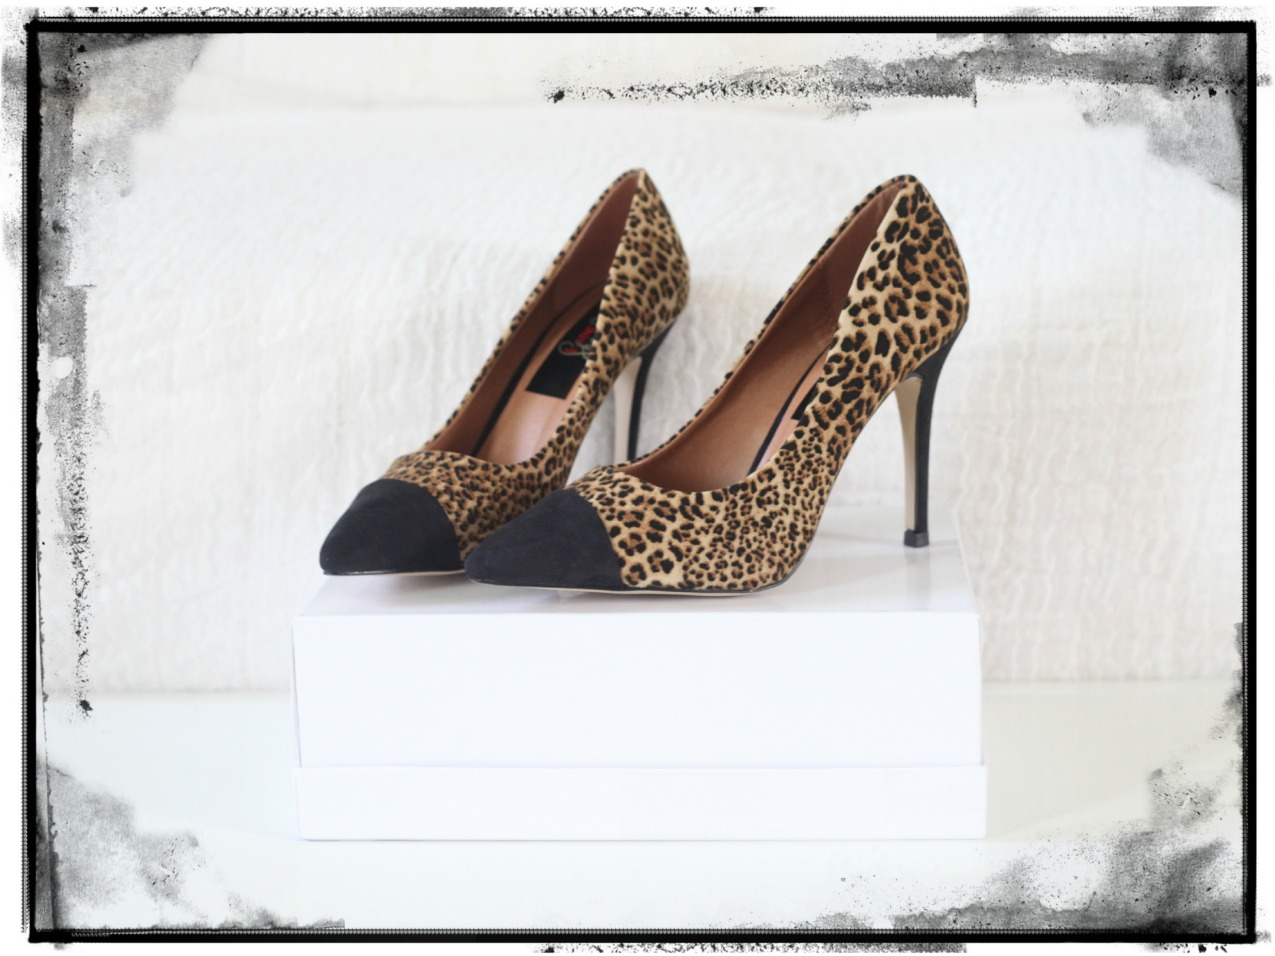 Shoes-addiction di Marzo: animalier e lime green, alessia milanese, thechilicool, fashion blog, fashion blogger,  guess scarpe